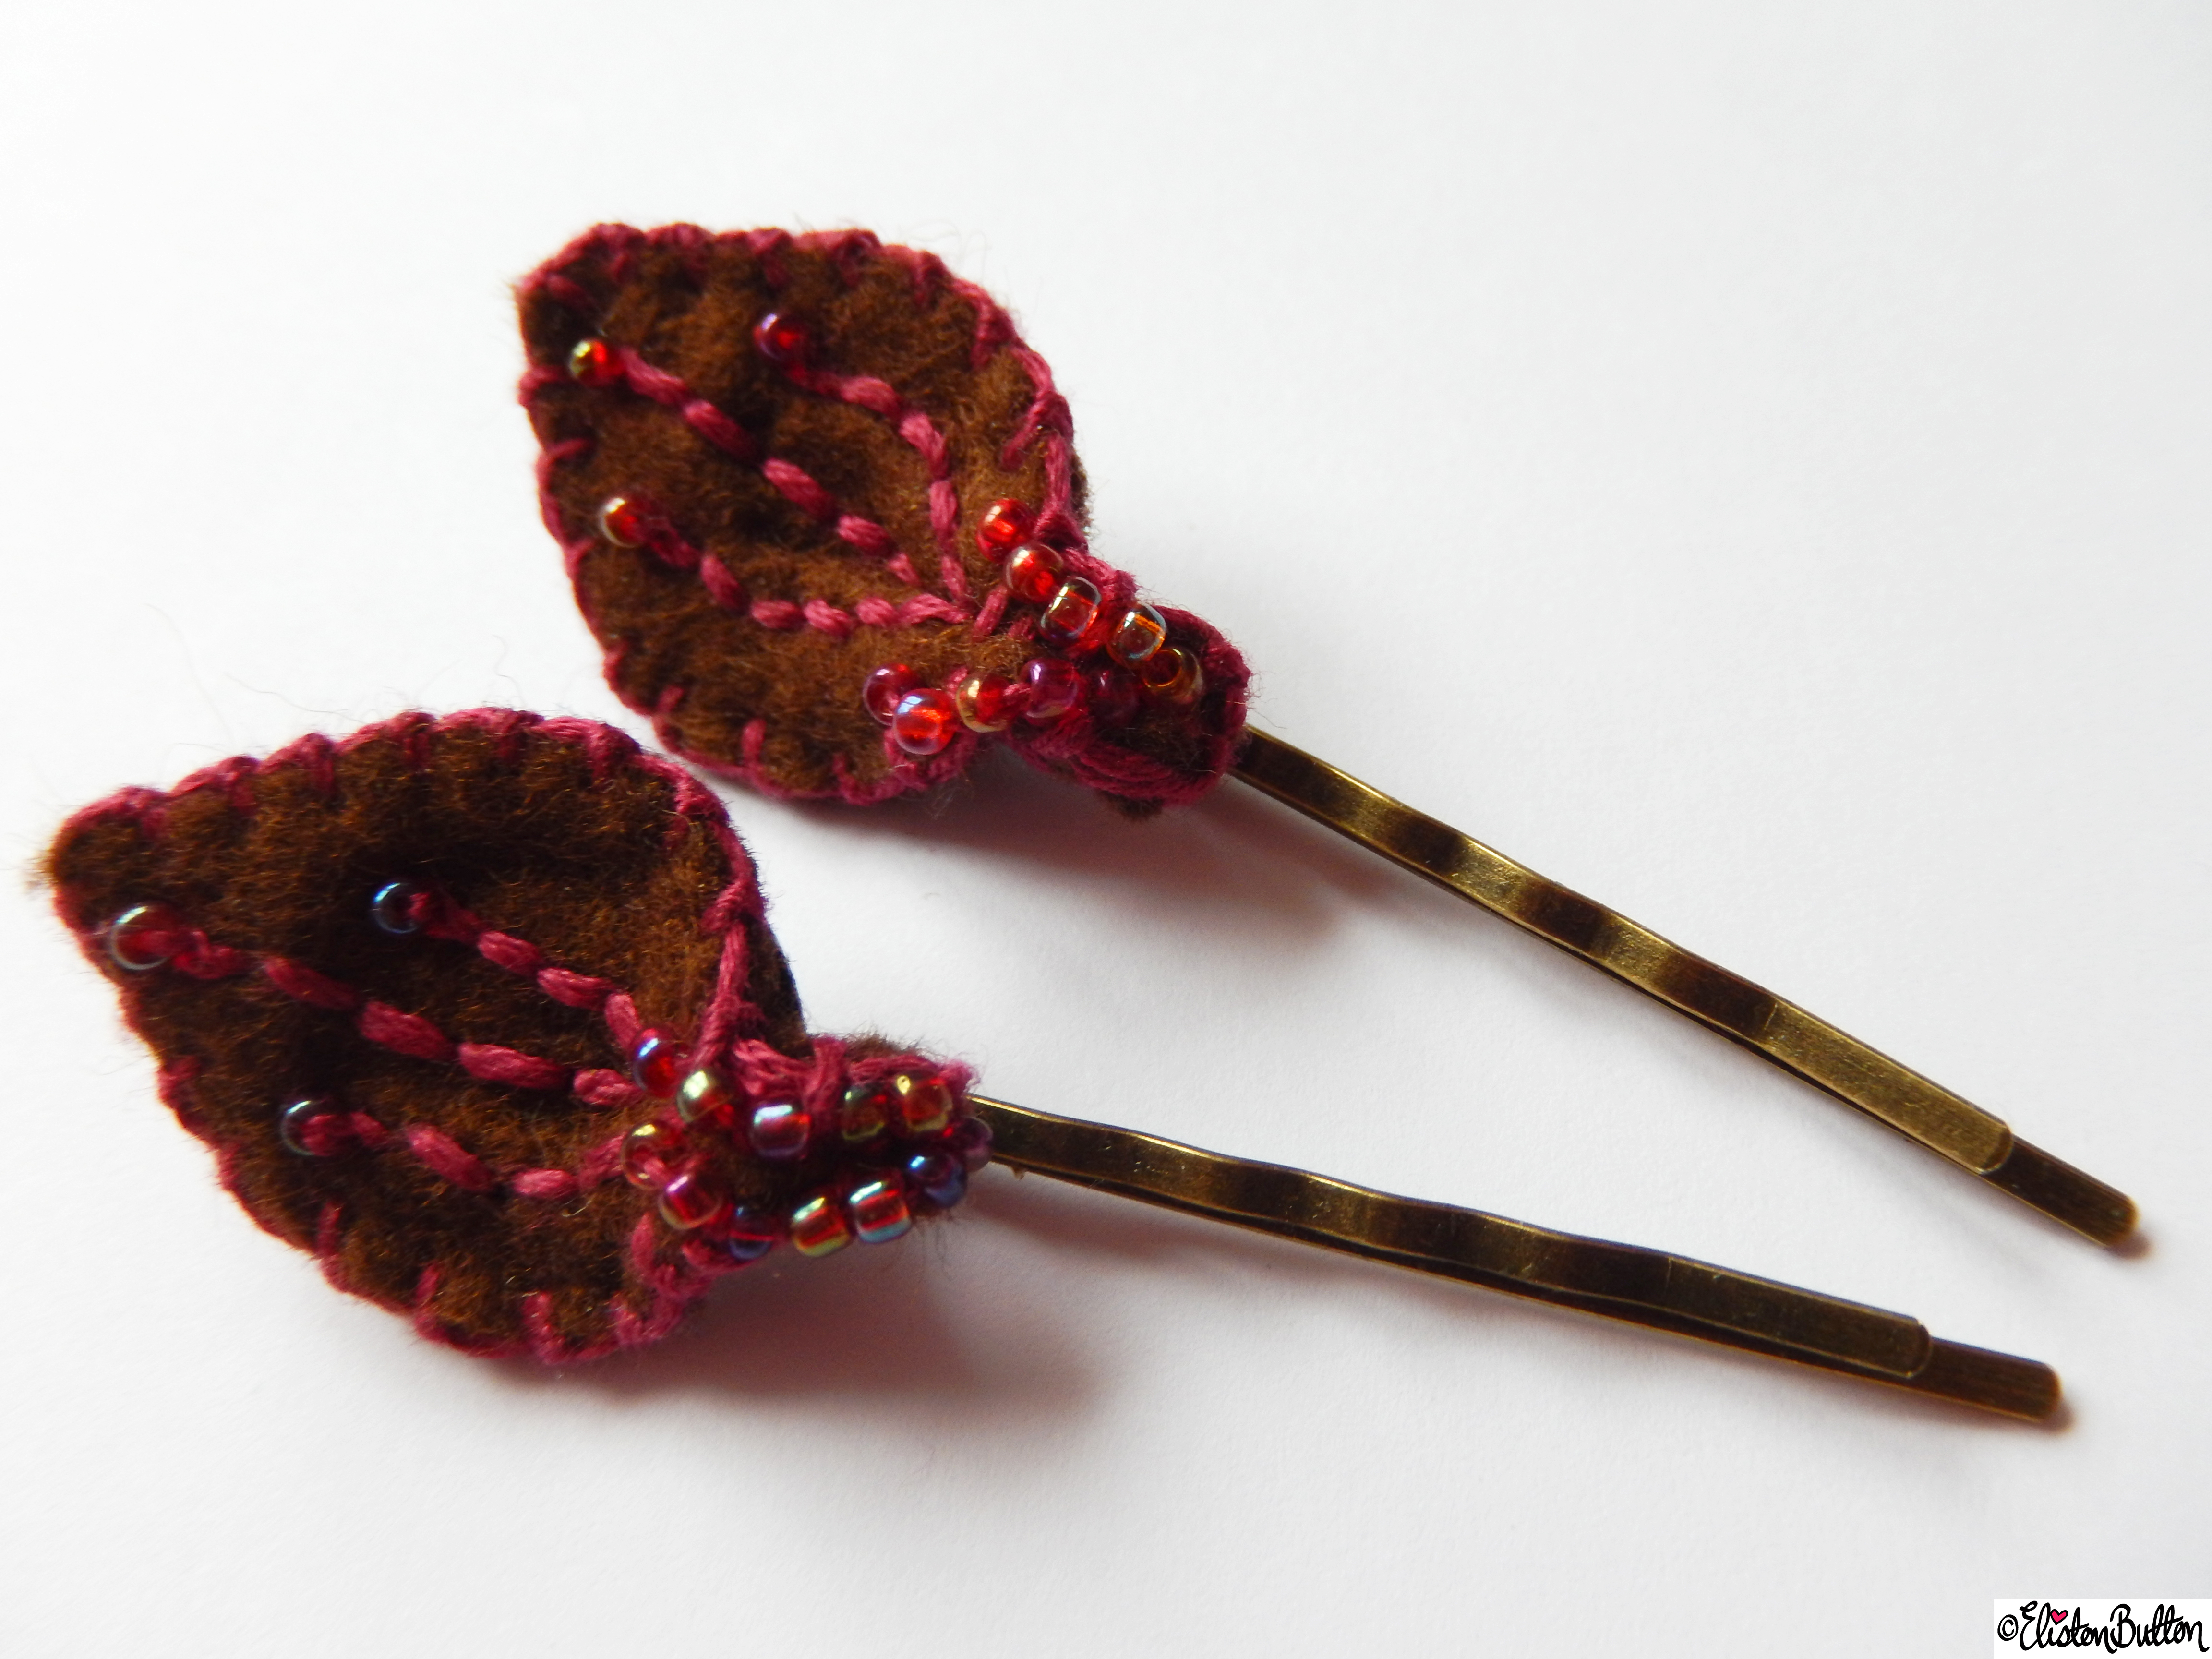 Chocolate Brown and Raspberry Pink Embroidered and Beaded Hair Grips - Create 28 - No.4 - Embroidered Felt Petal Hair Grips at www.elistonbutton.com - Eliston Button - That Crafty Kid – Art, Design, Craft & Adventure.